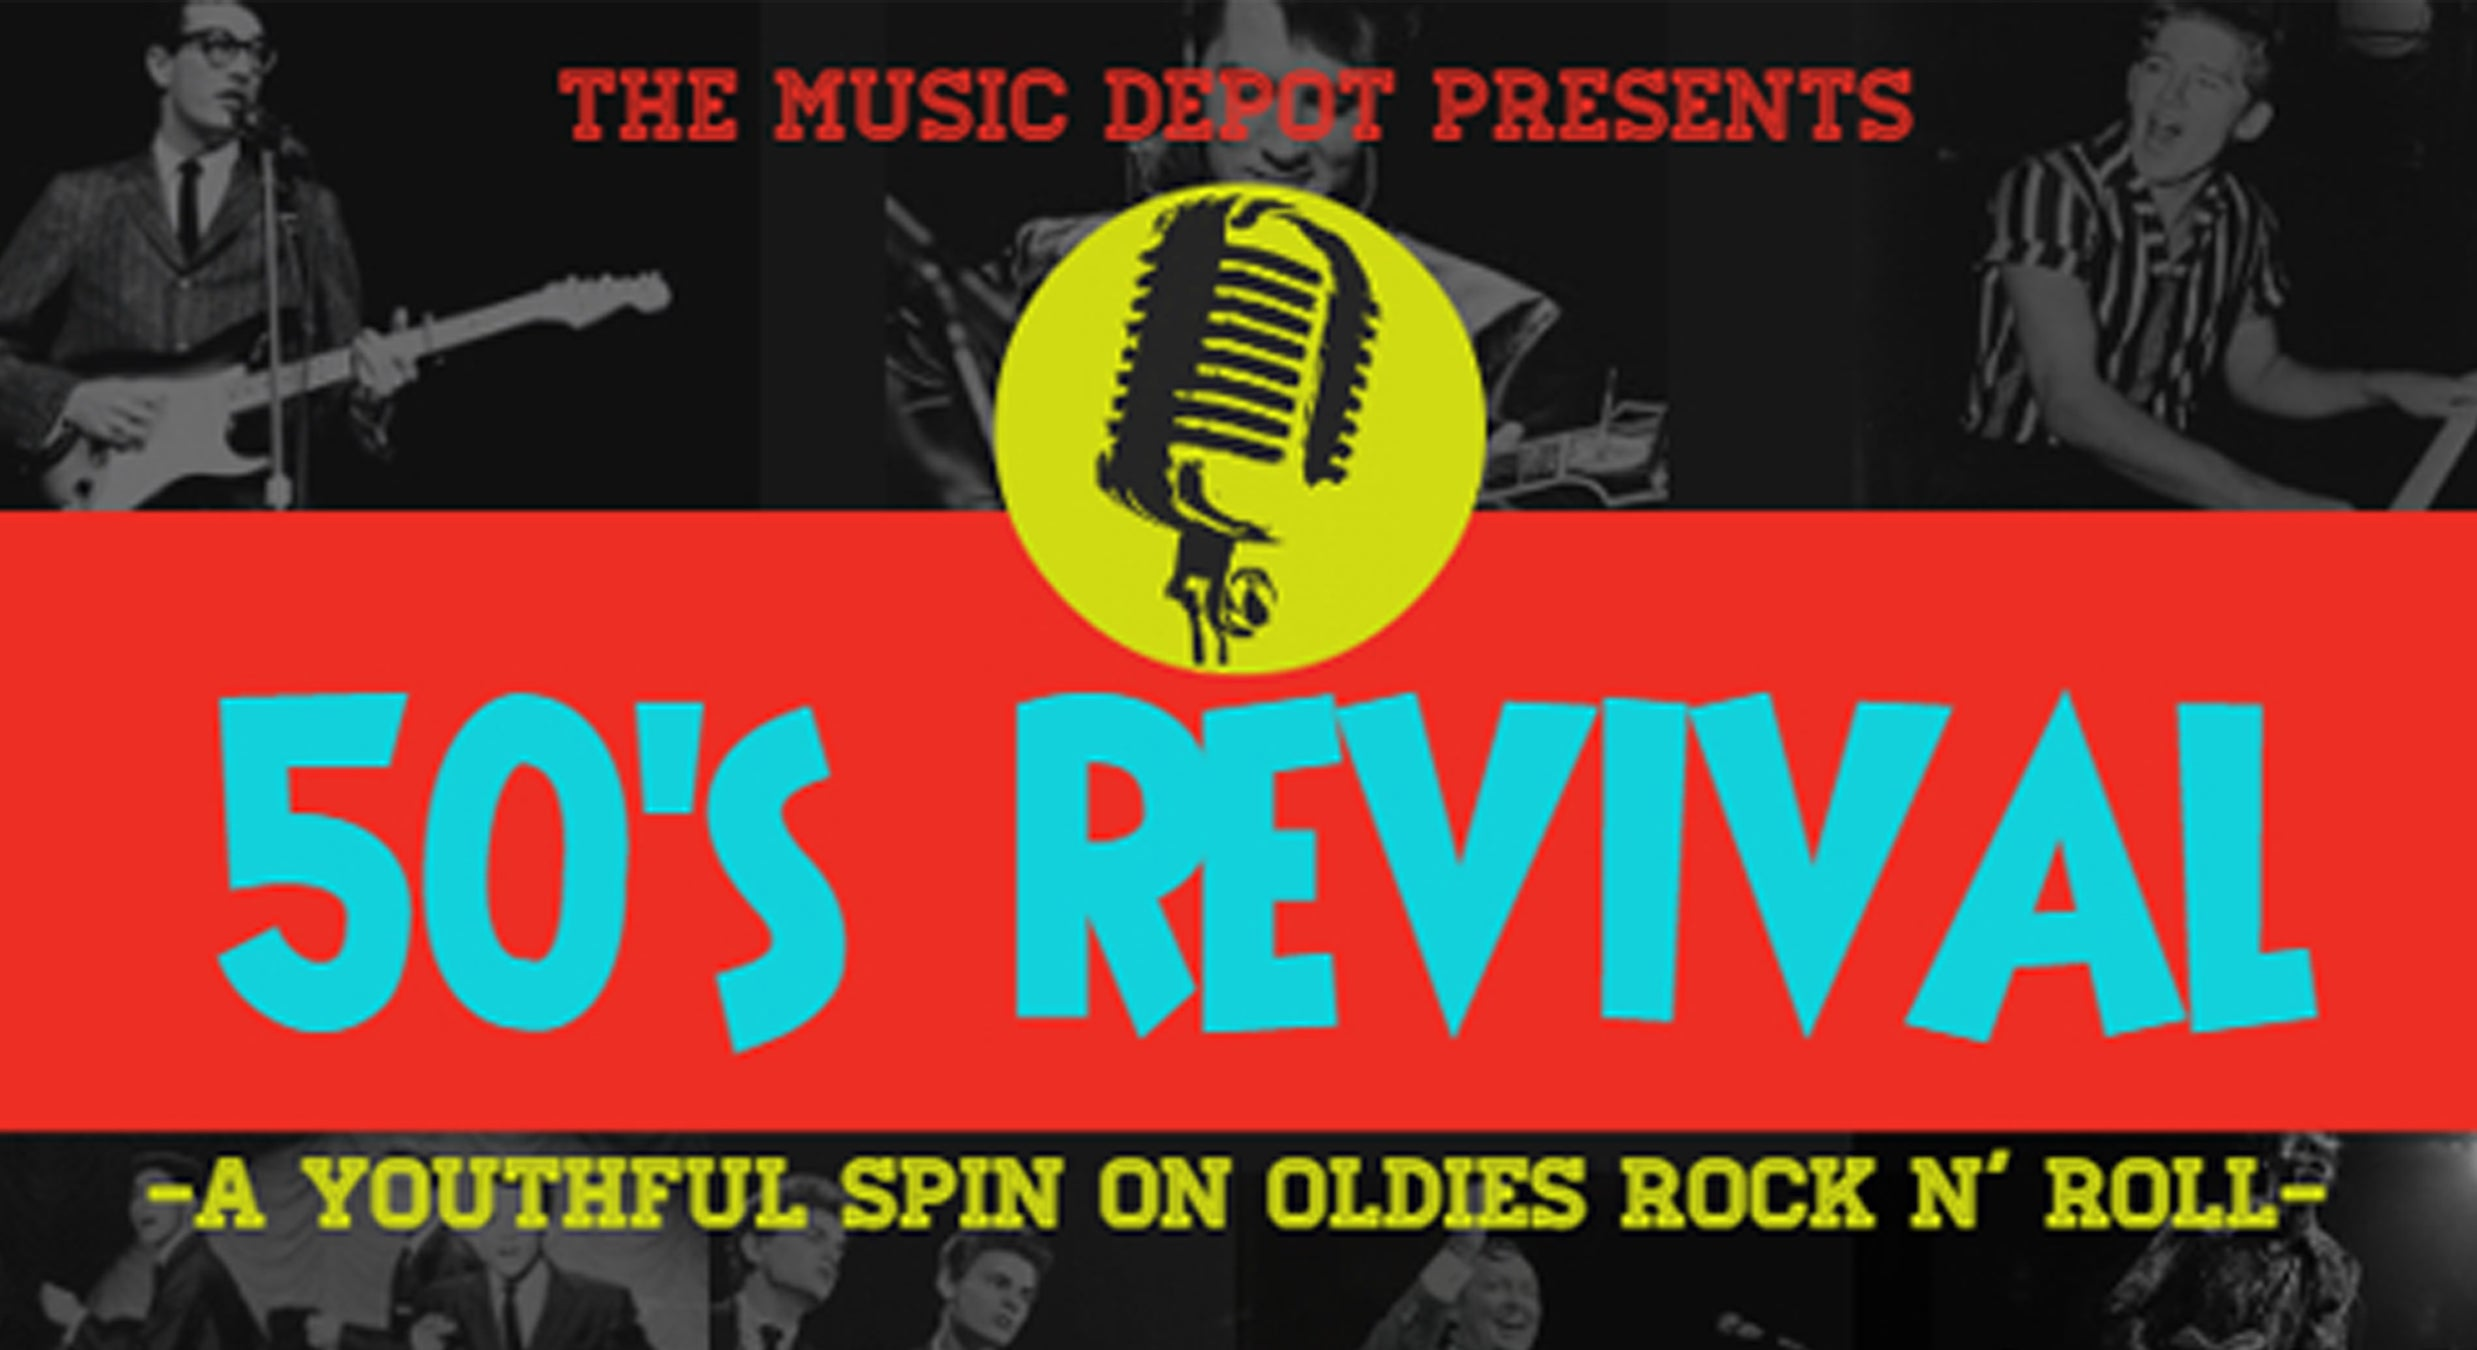 Book a Band Niagara - 50's Revival, A Youthful Spin on Oldies Rock N' Roll